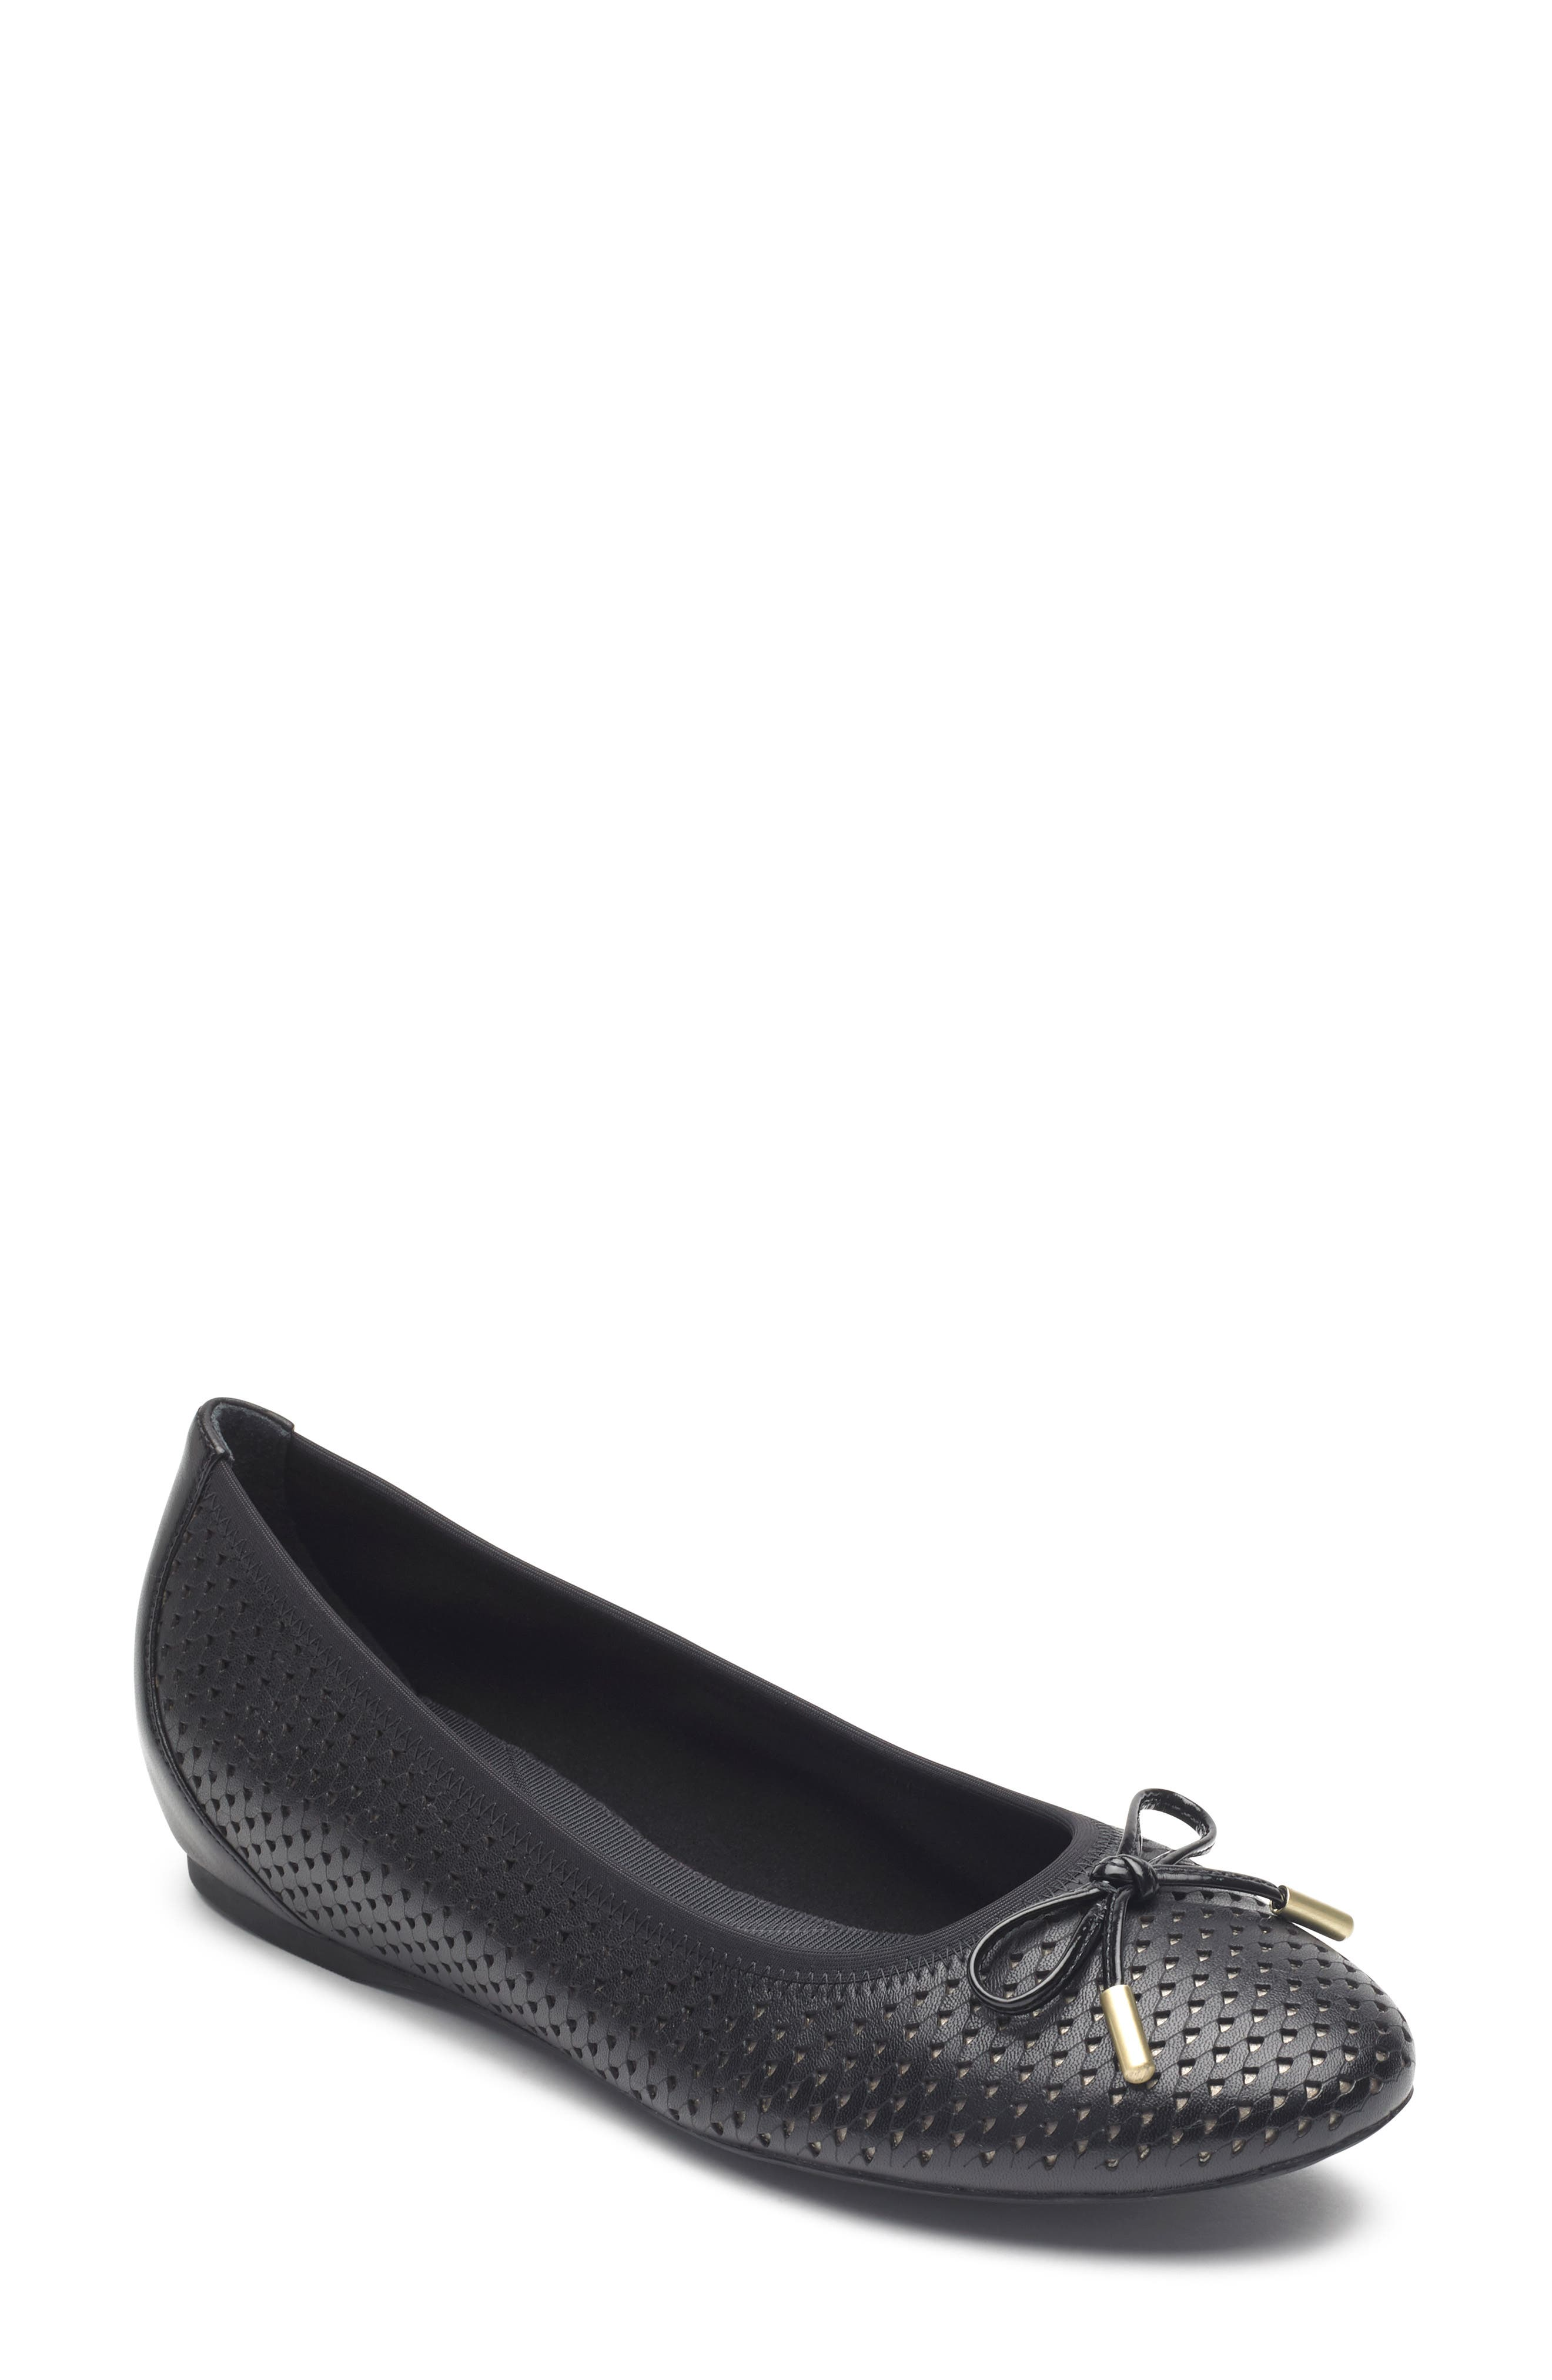 Rockport Total Motion Hidden Wedge Perforated Flat, Black